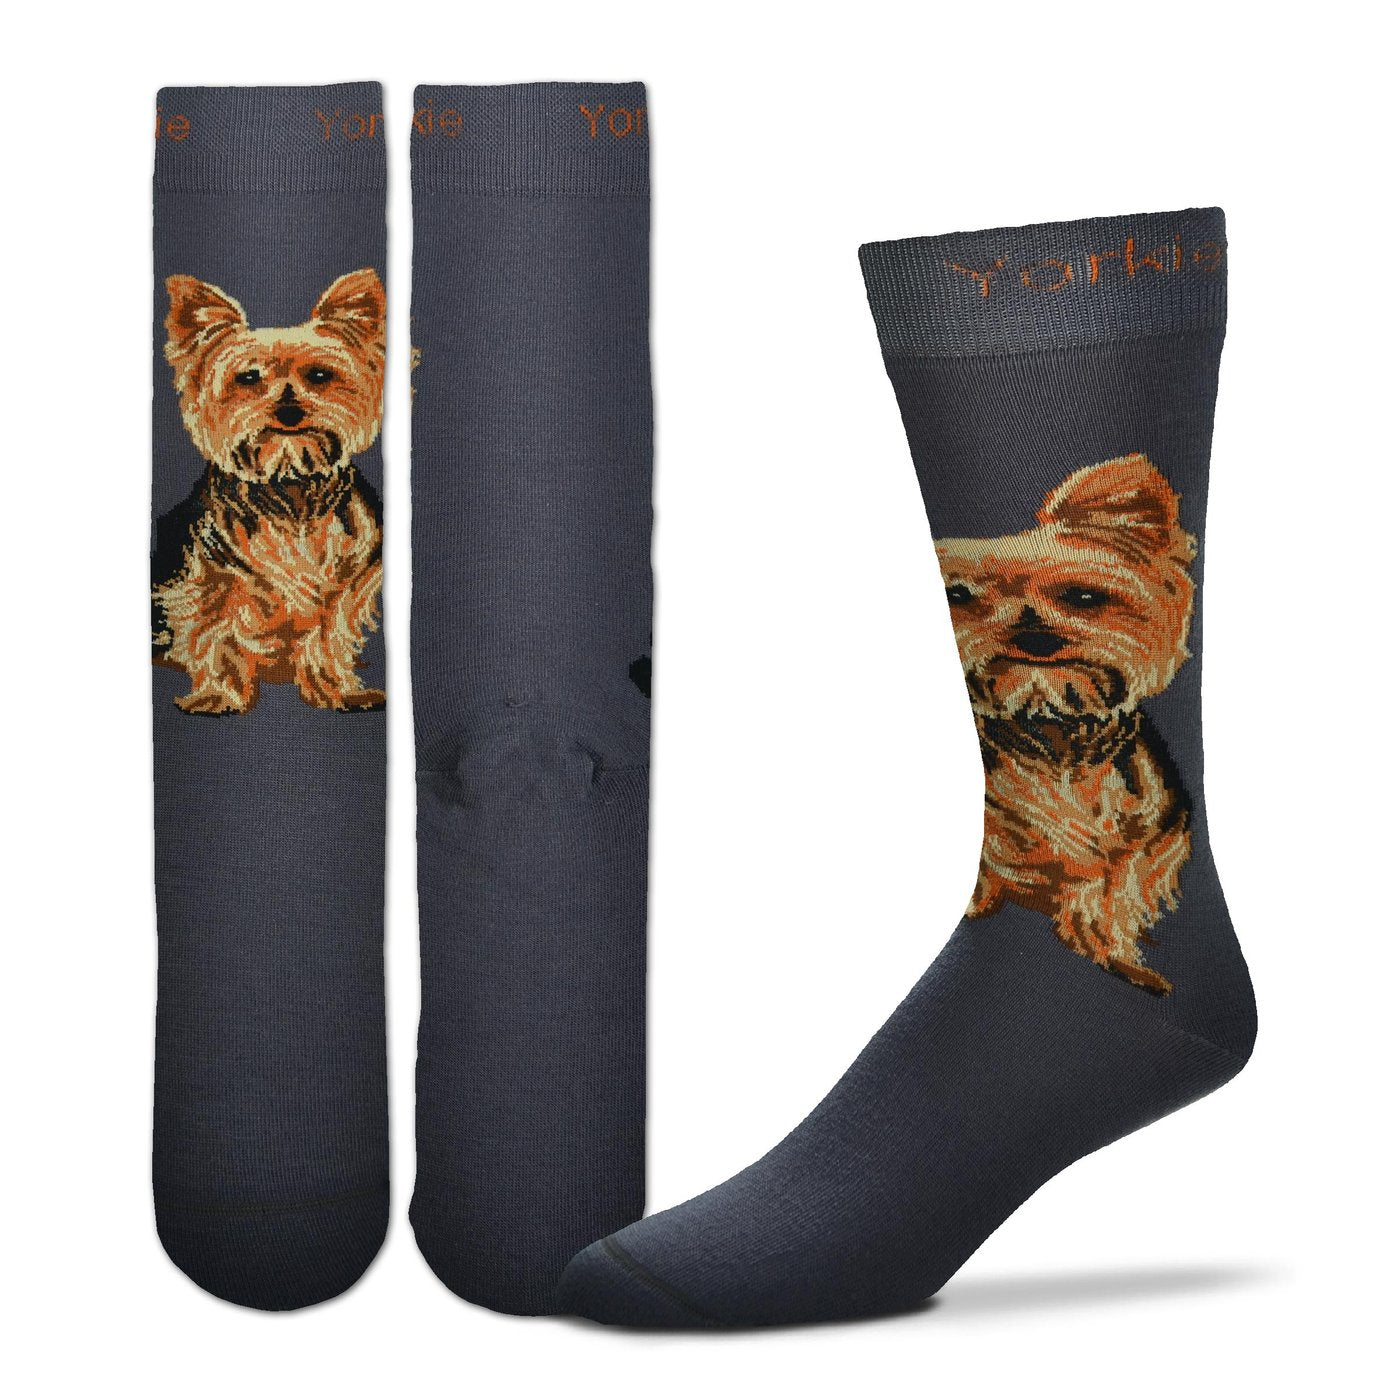 Yorkie Socks - One Size - Novelty Socks, Mens, Womens, Kids